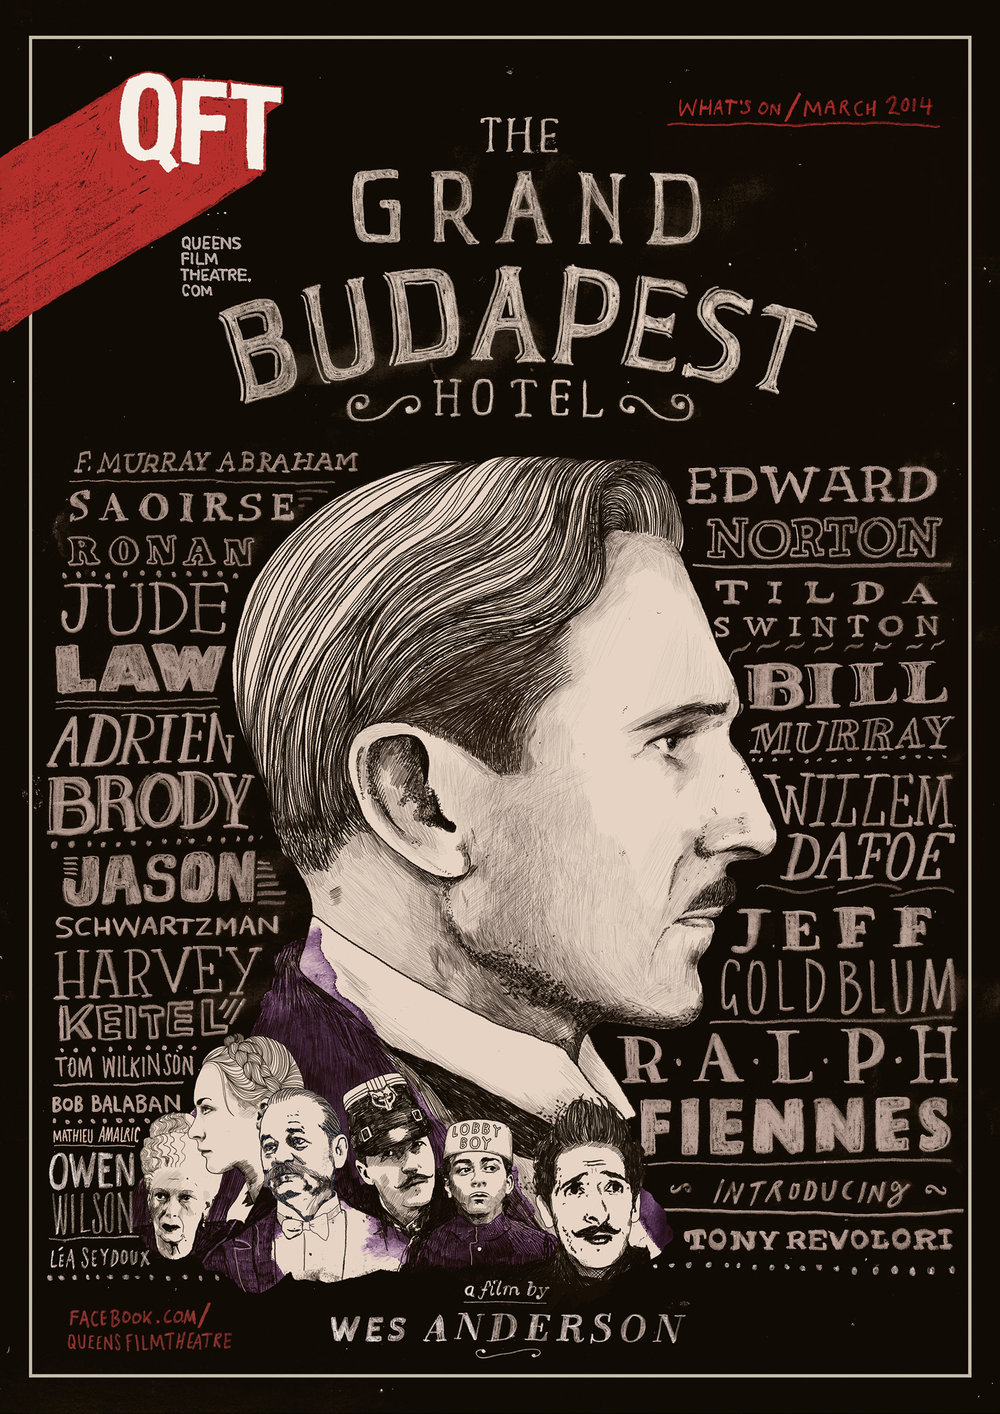 The Grand Budapest Hotel For QFT